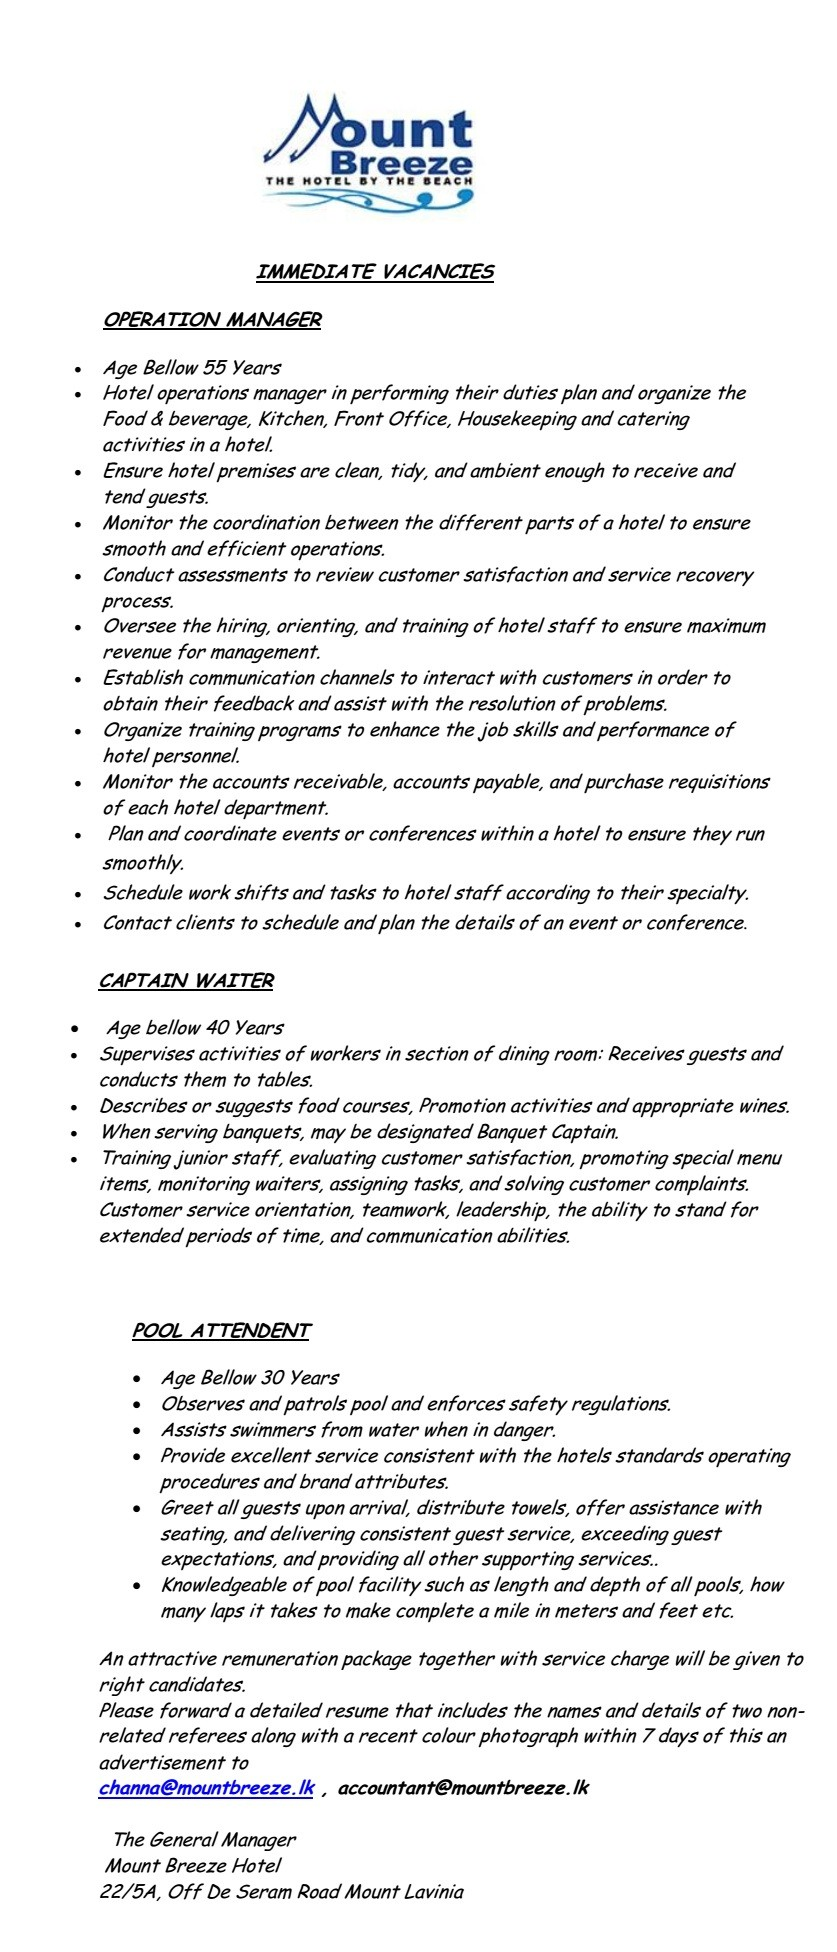 get resume professionally done get my resume professionally done